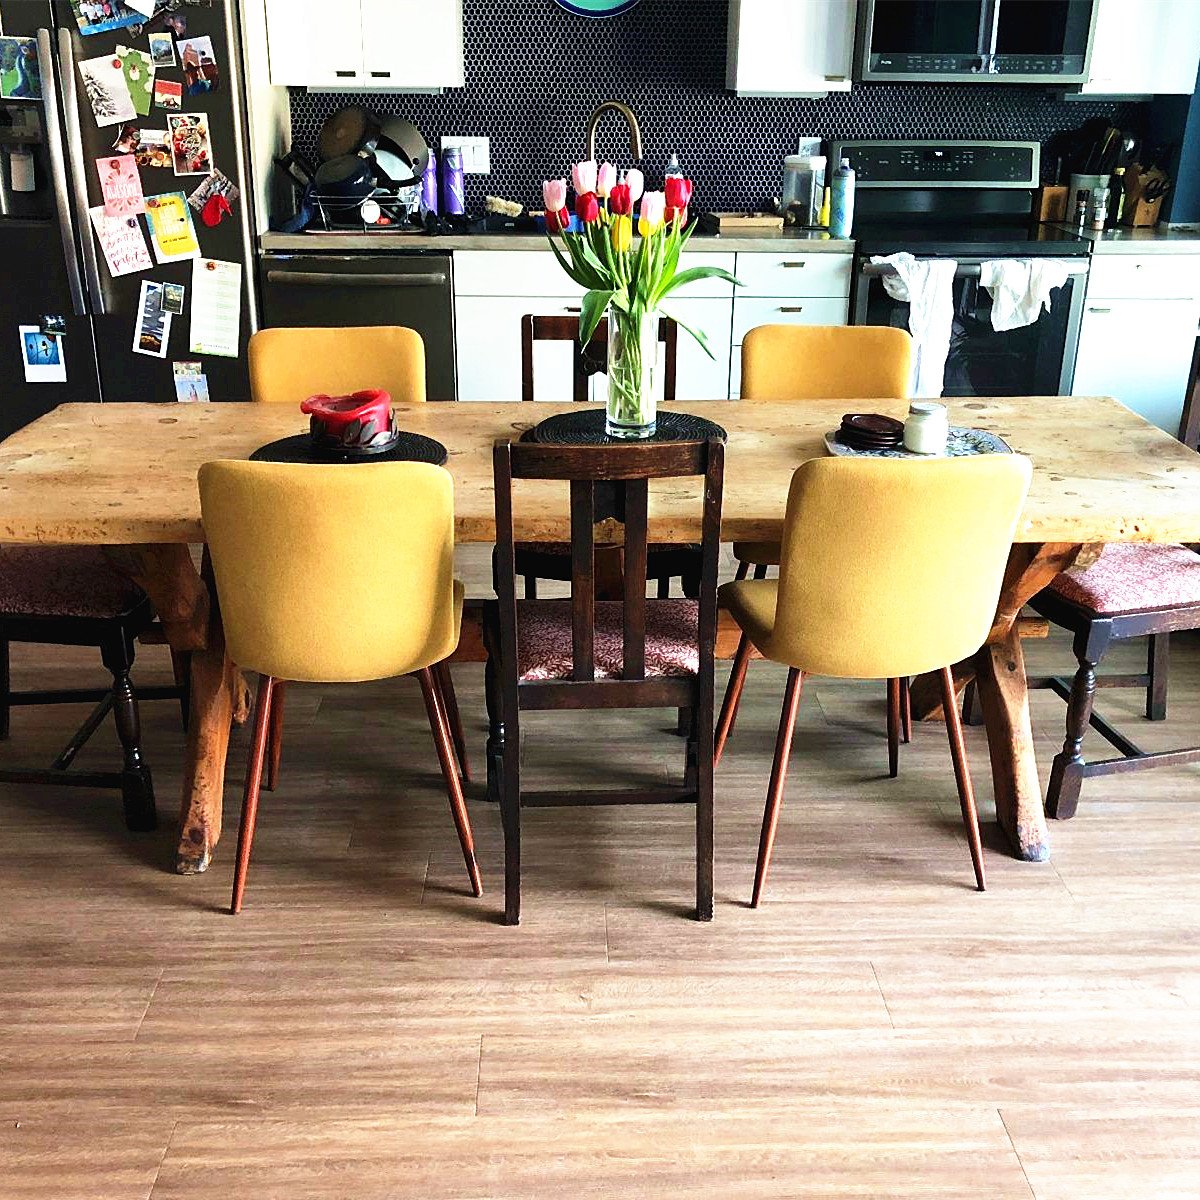 Coavas Set of 4 Dining Chairs Fabric Cushion Kitchen Side Chairs with Sturdy Metal Legs for Dining Room, Yellow by Coavas (Image #5)